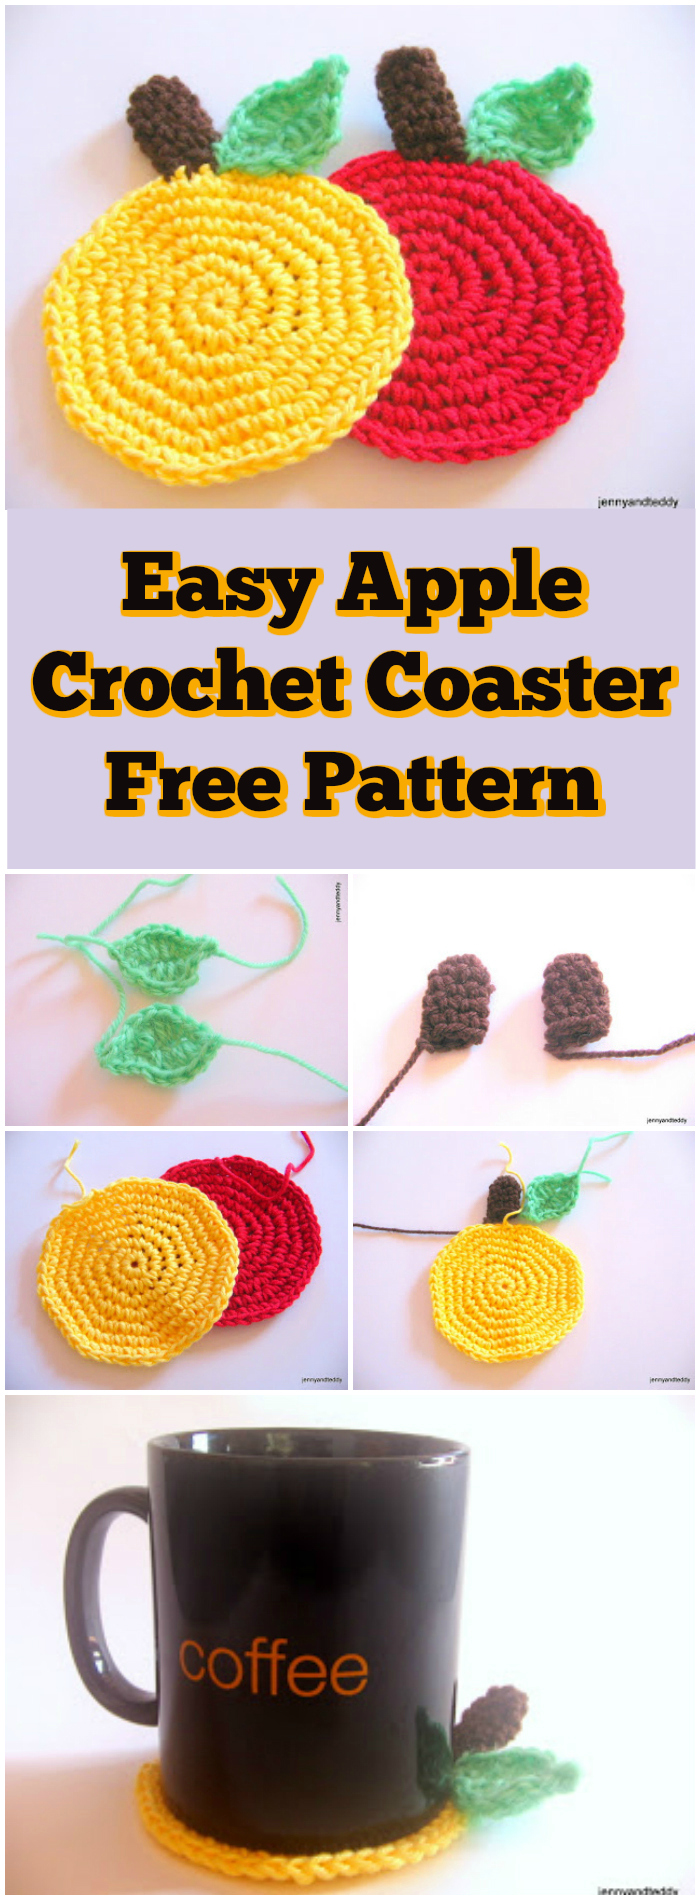 Easy Apple Crochet Coaster Free Pattern - free crochet coaster patterns | Free Crochet Coaster Patterns